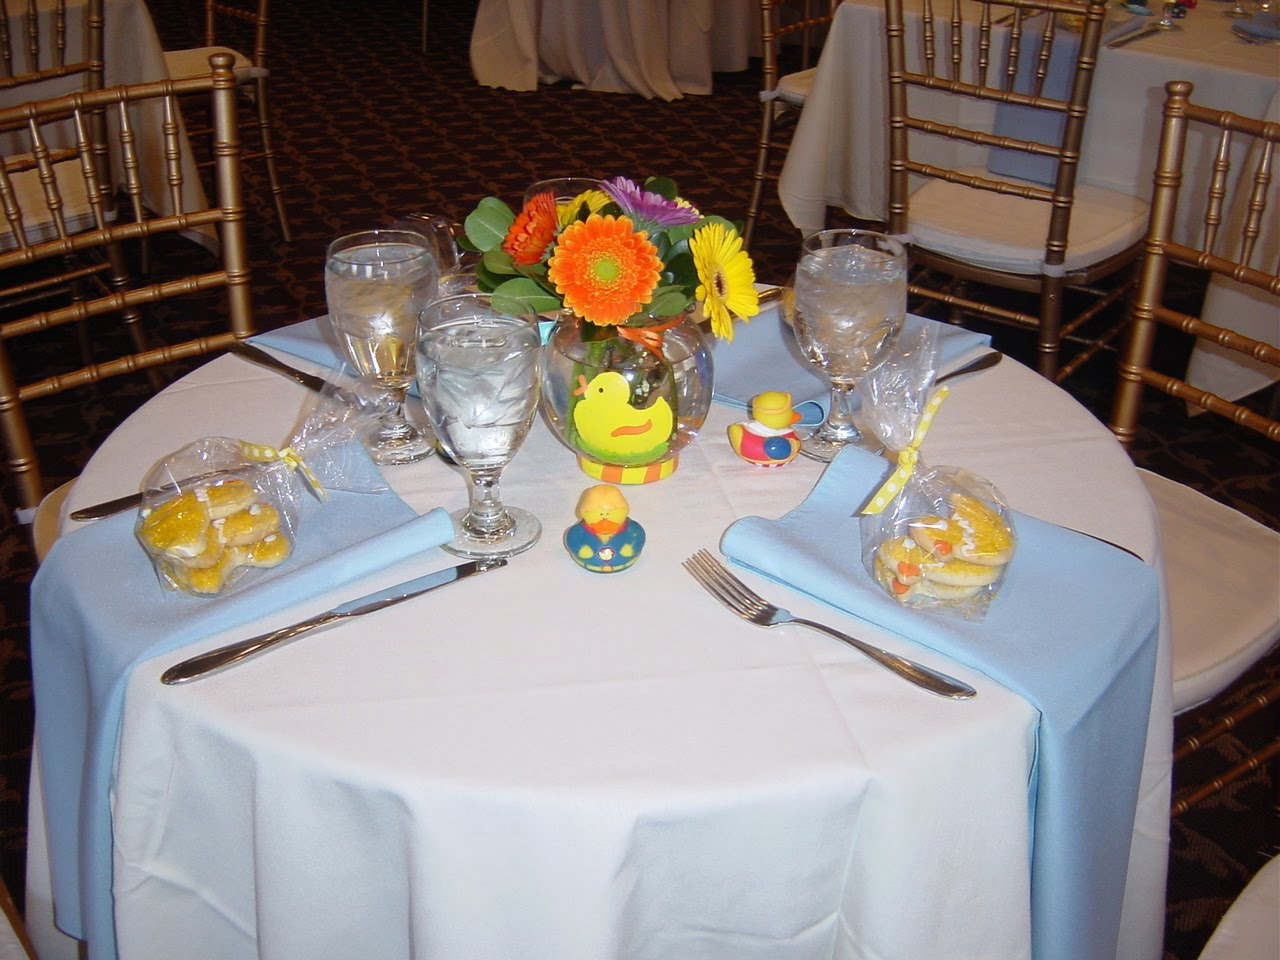 Rubber Duck Baby Shower Centerpieces http://whimsicalwelcomesflowers.blogspot.com/2011/04/coreys-baby-shower-rubber-duckie-youre.html